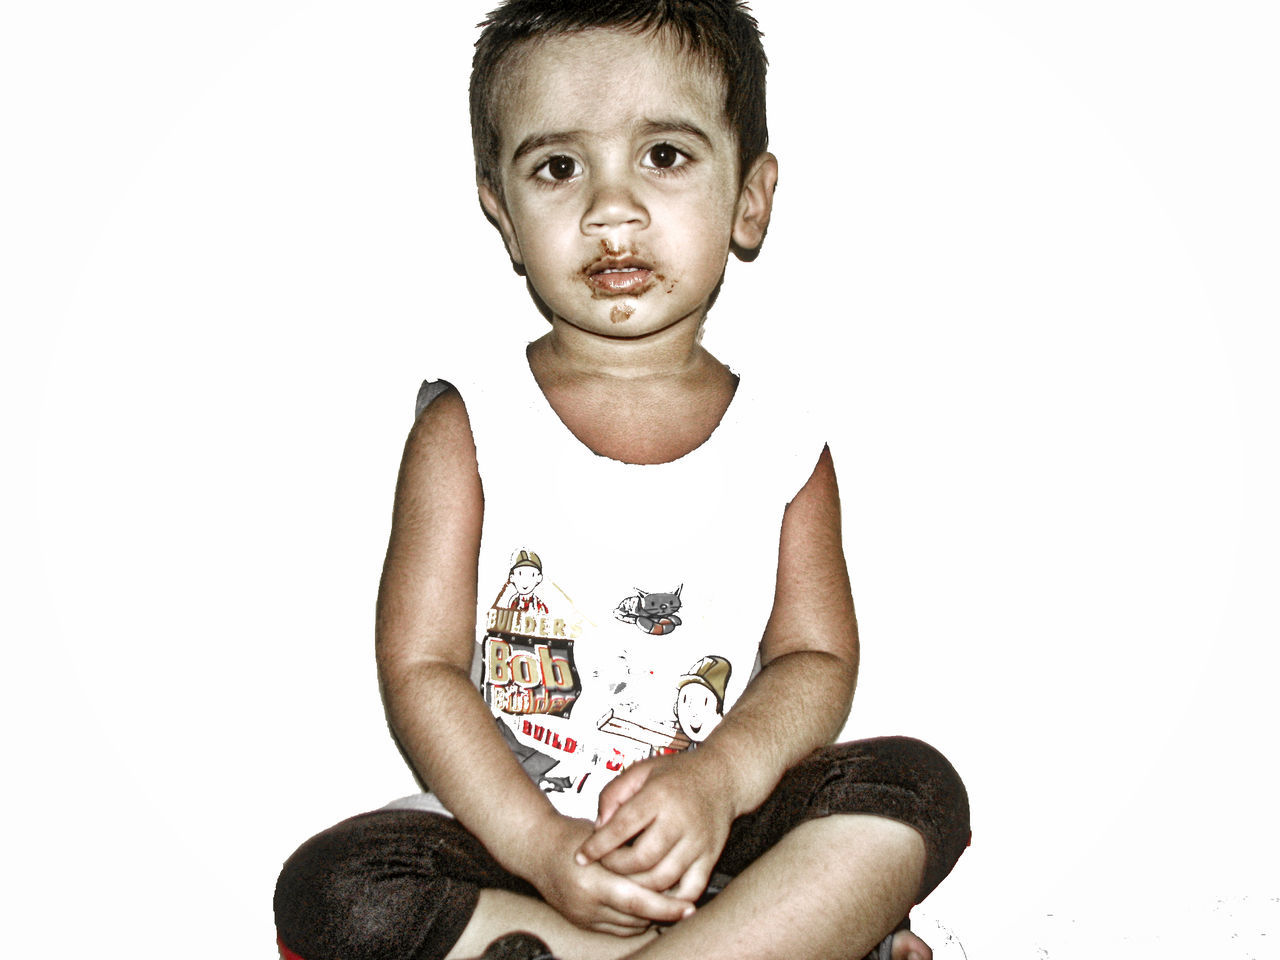 Portrait Of Cute Boy With Messy Mouth Sitting Against White Background